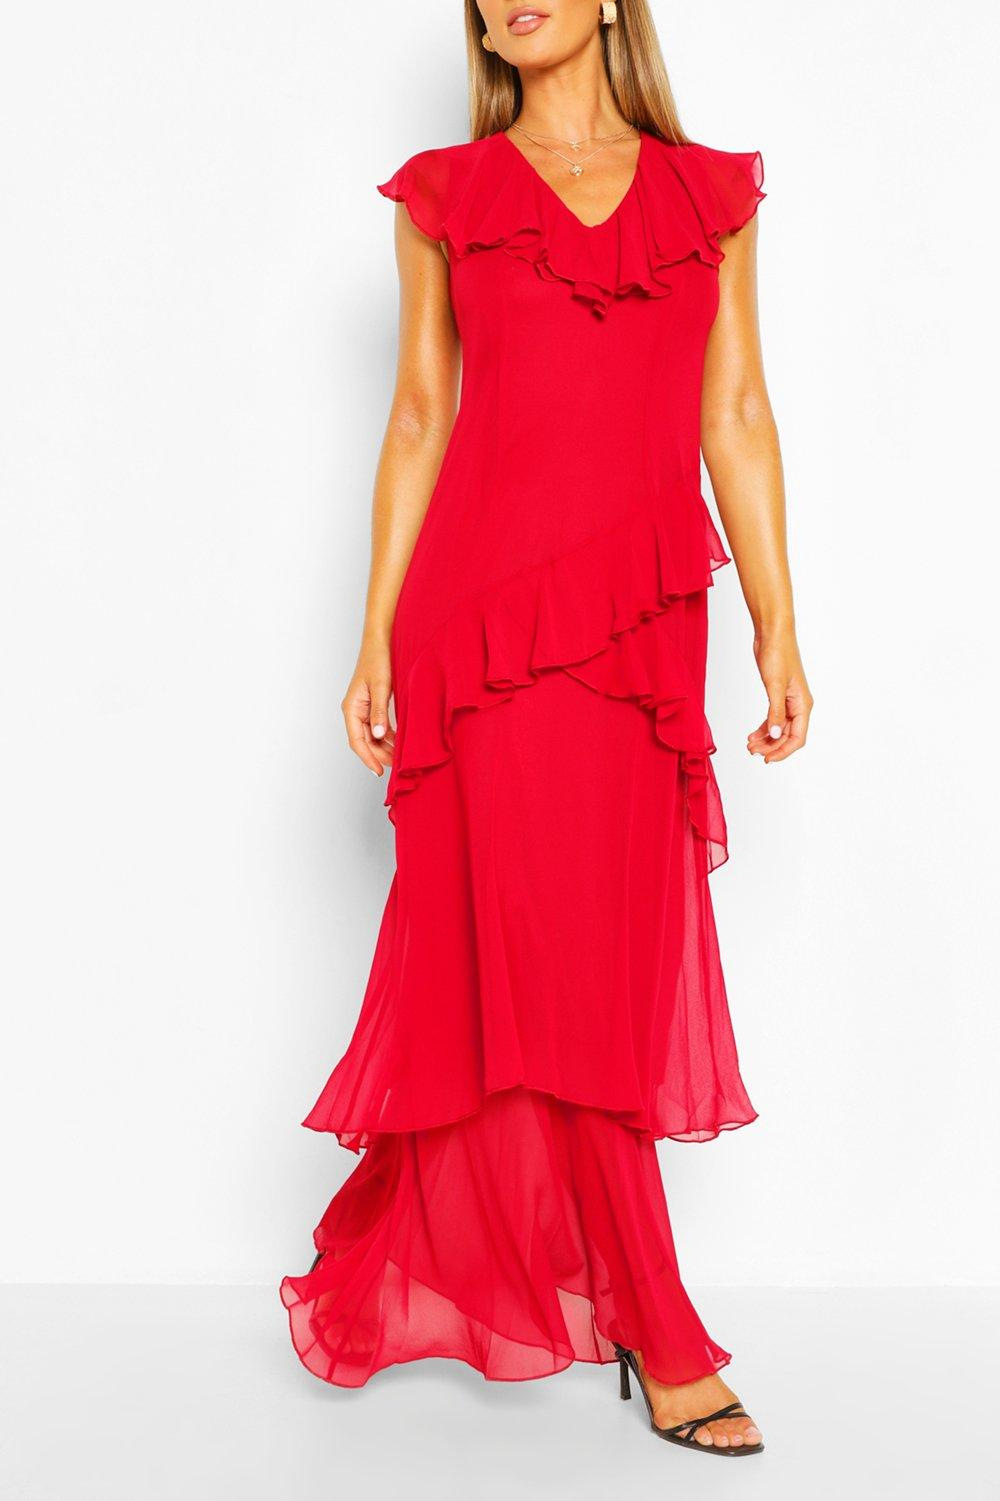 Vintage Evening Dresses and Formal Evening Gowns Womens Plunge Front Ruffle Maxi Dress - Red - 14 $21.00 AT vintagedancer.com